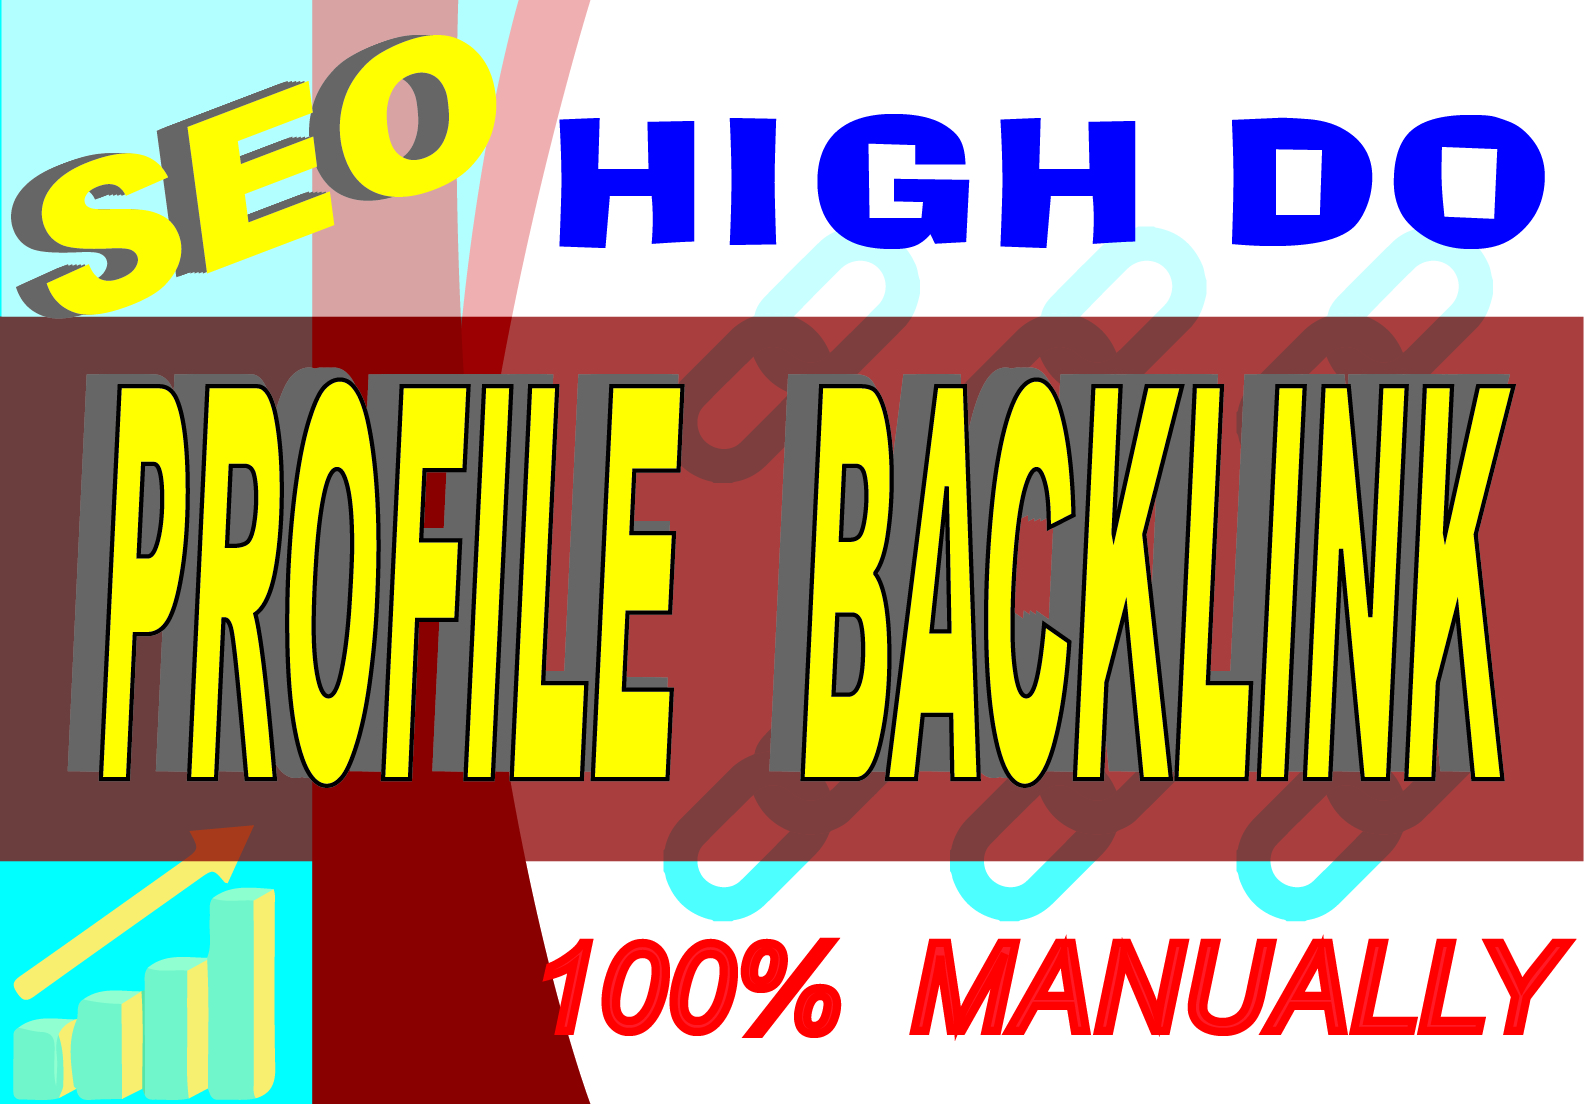 I will create 100 manually web 2.0 backlinks